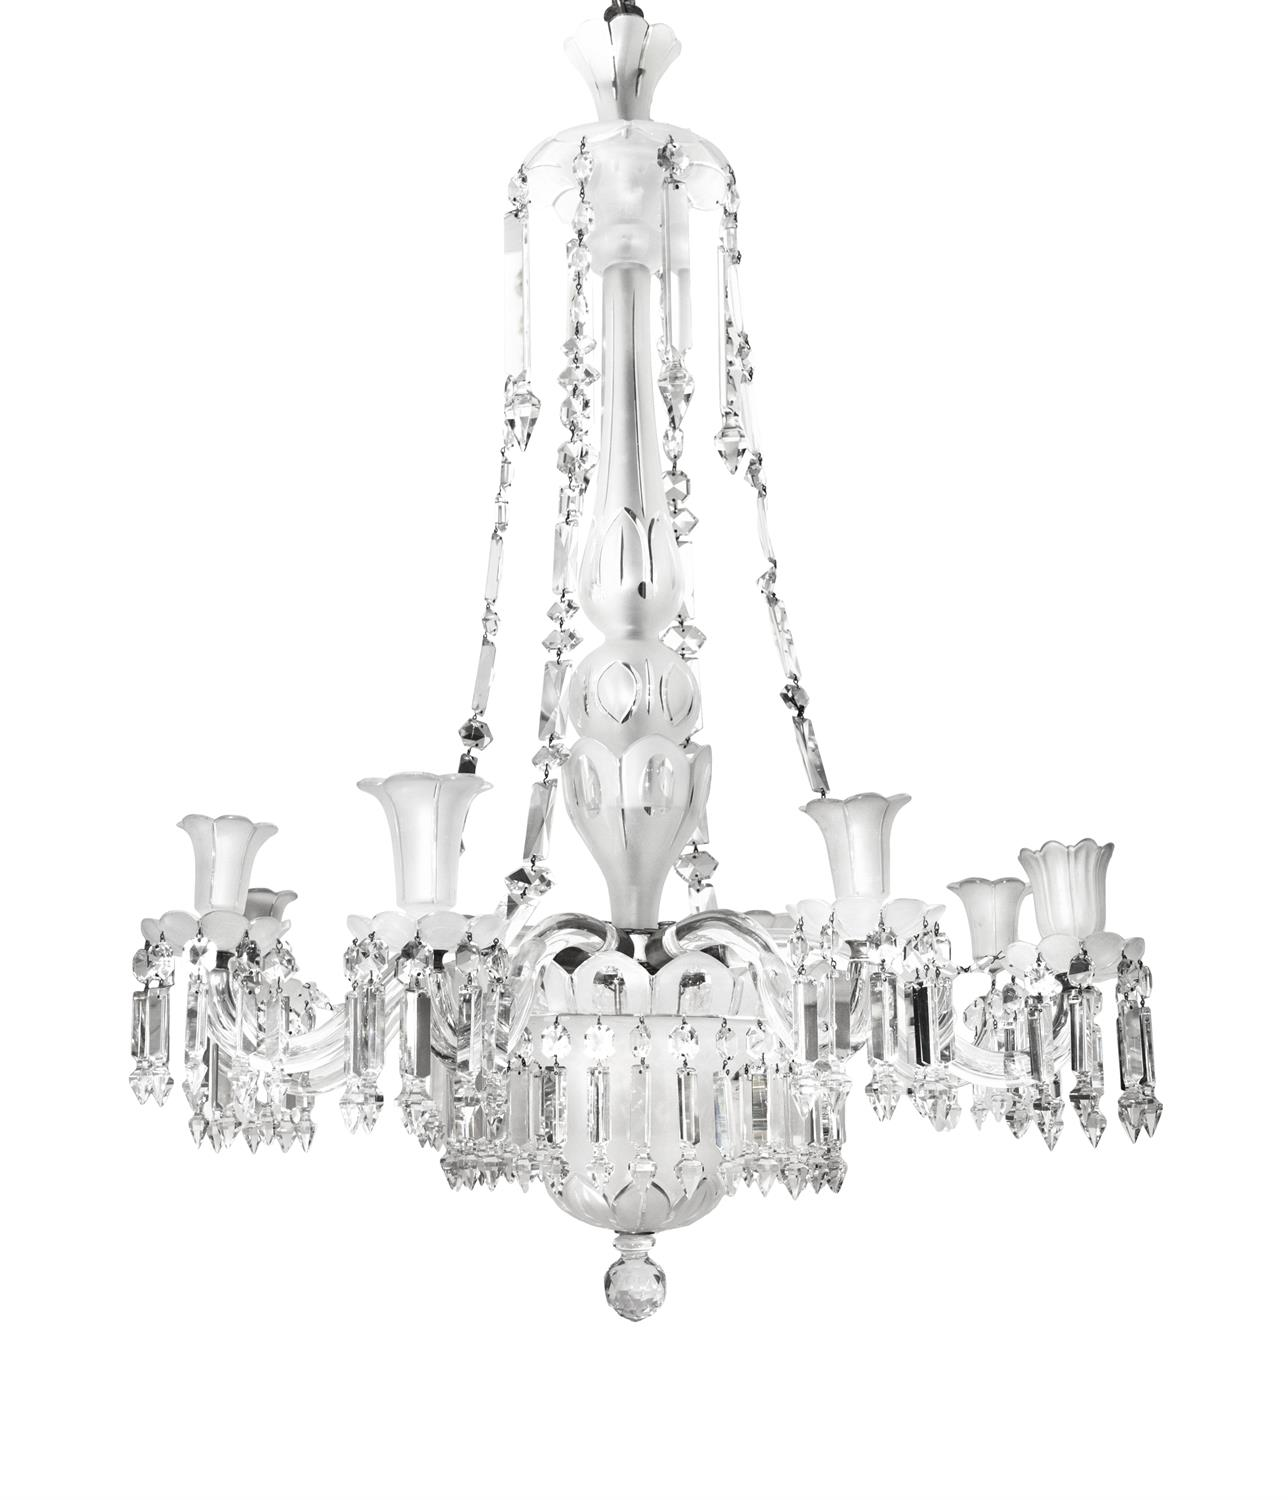 A LARGE CUT-GLASS EIGHT BRANCH CHANDELIER, 20th century, with frosted glass body and shades,